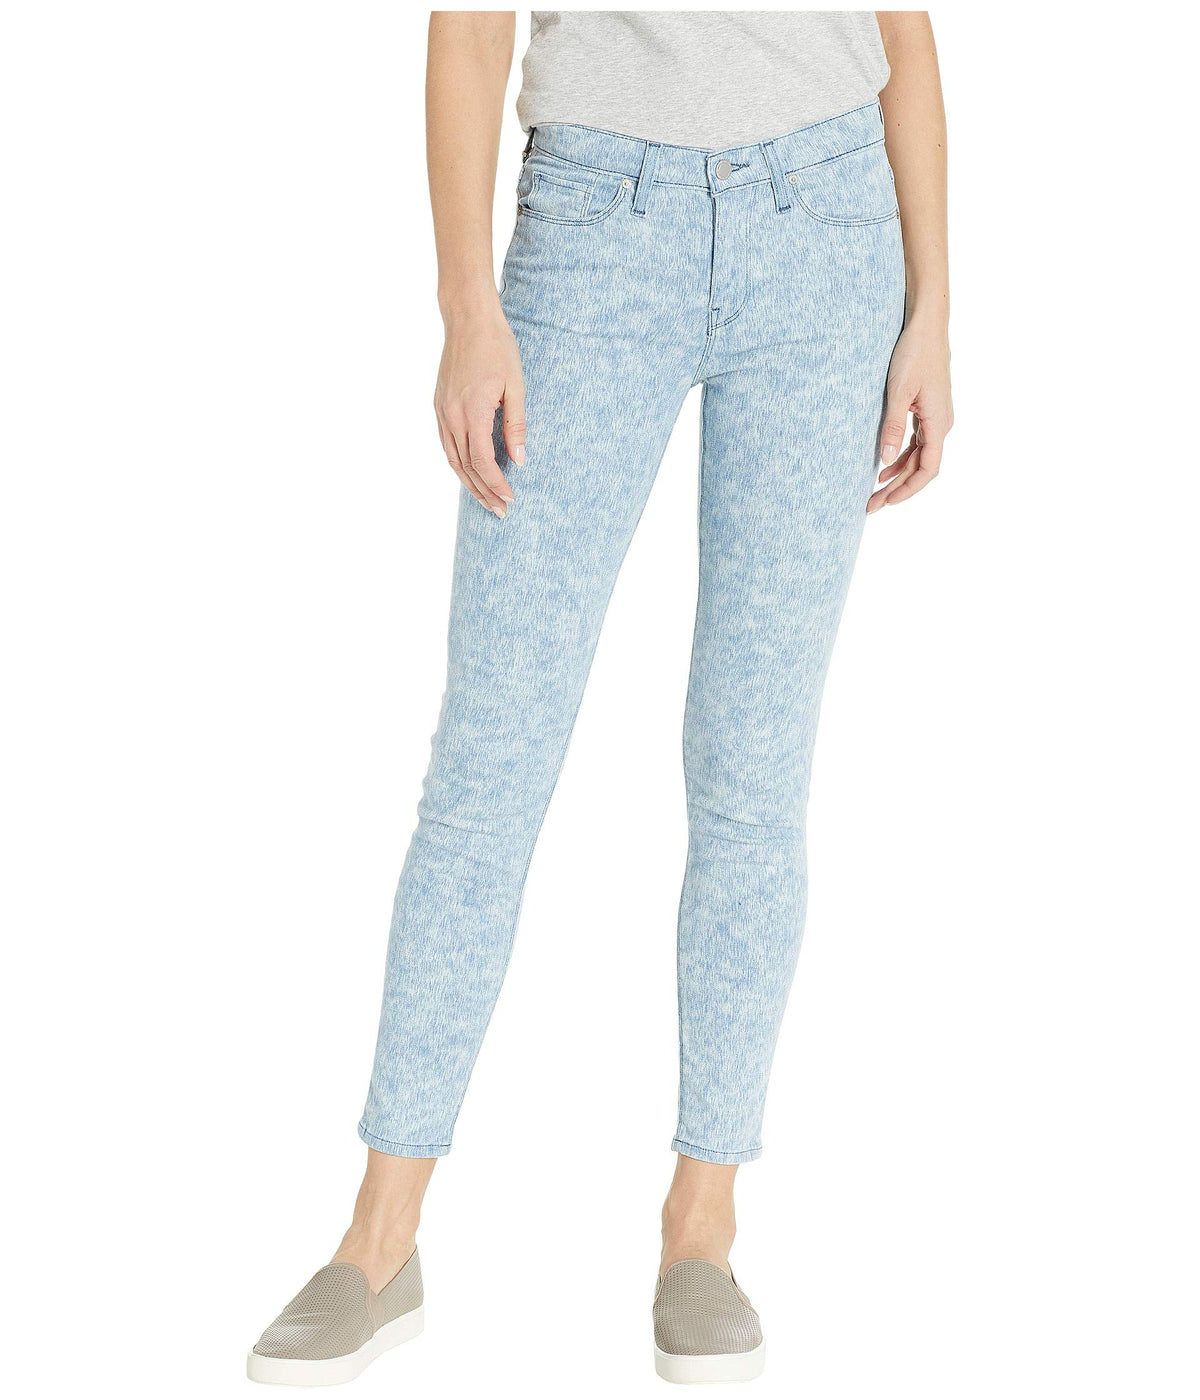 Nico Mid-Rise Ankle Skinny Jeans in Vapor